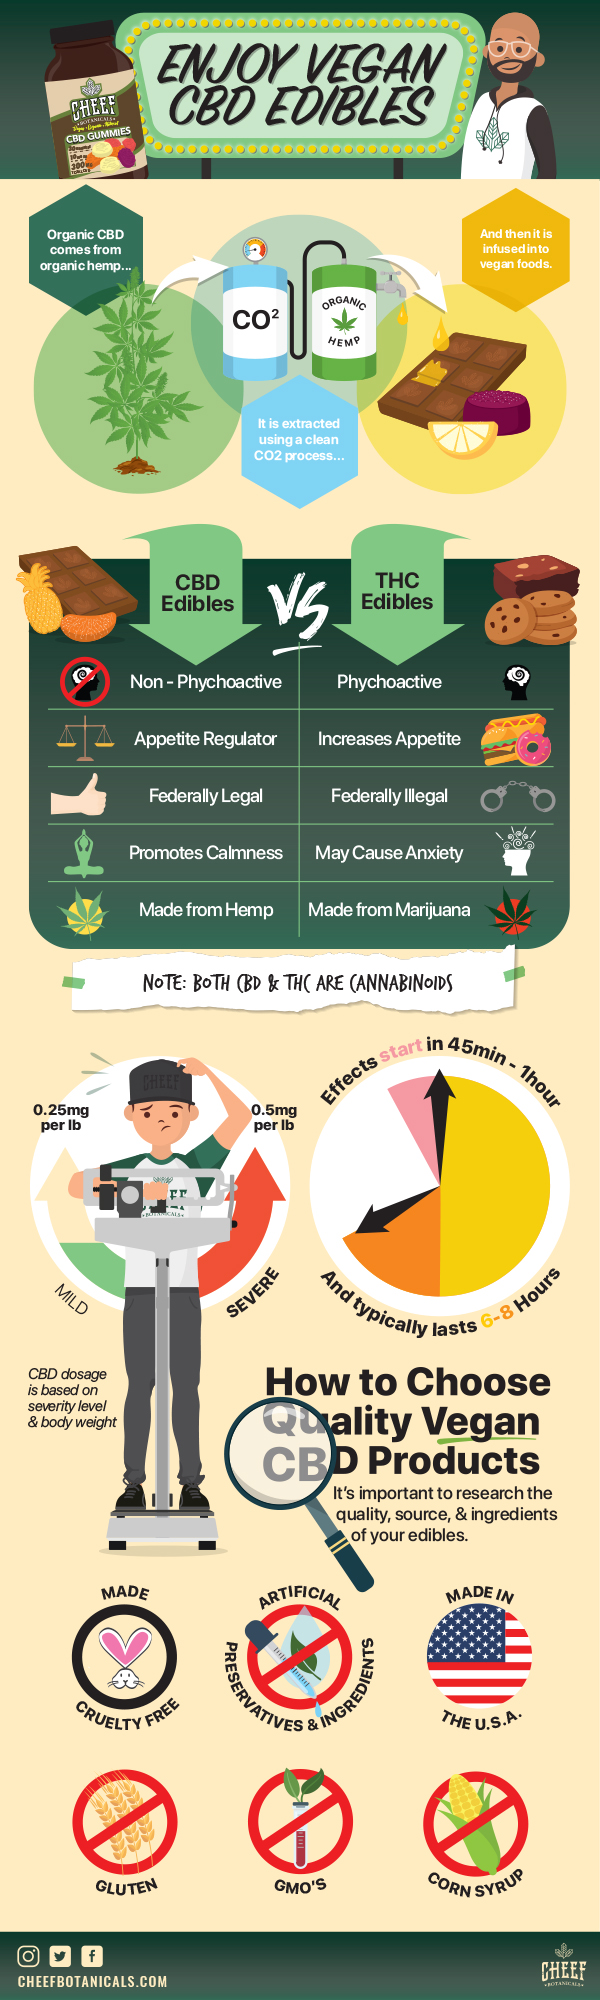 Enjoy vegan CBD edibles infographic